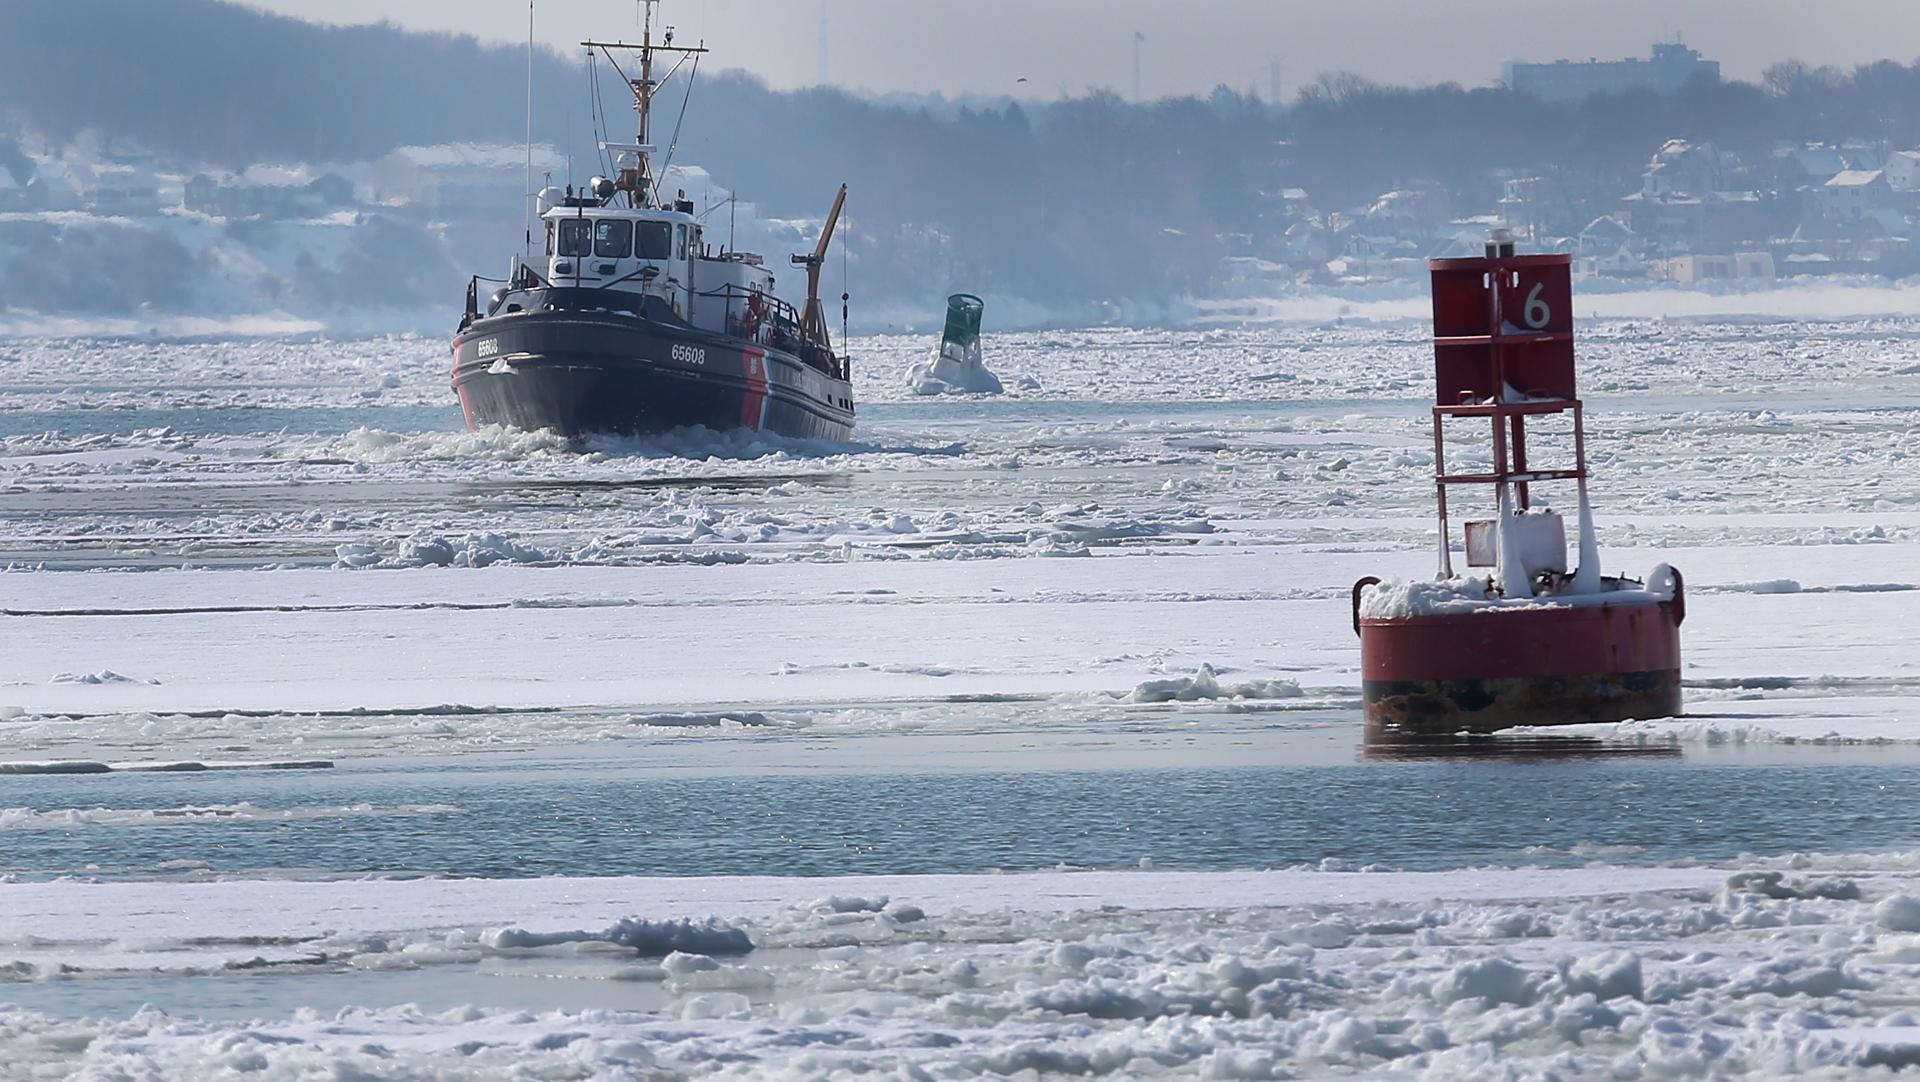 A Coast Guard vessel broke up ice in Hull Bay Thursday, an effort that has criss-crossed between there and Boston Harbor for months.